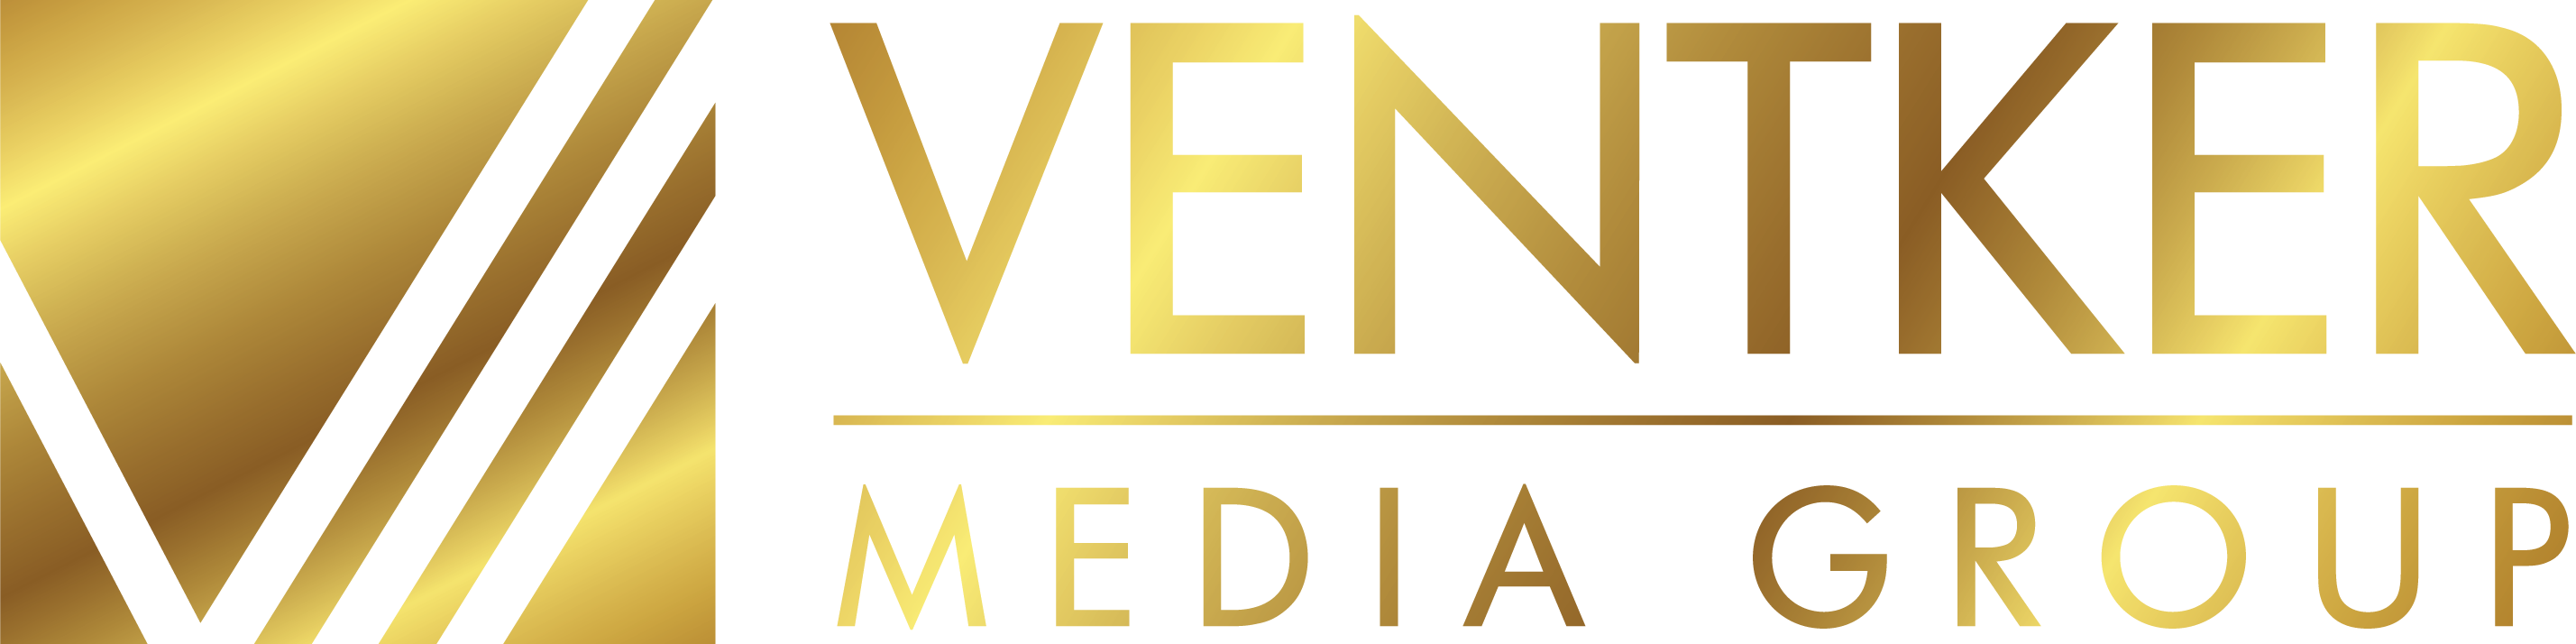 Ventker Media Group